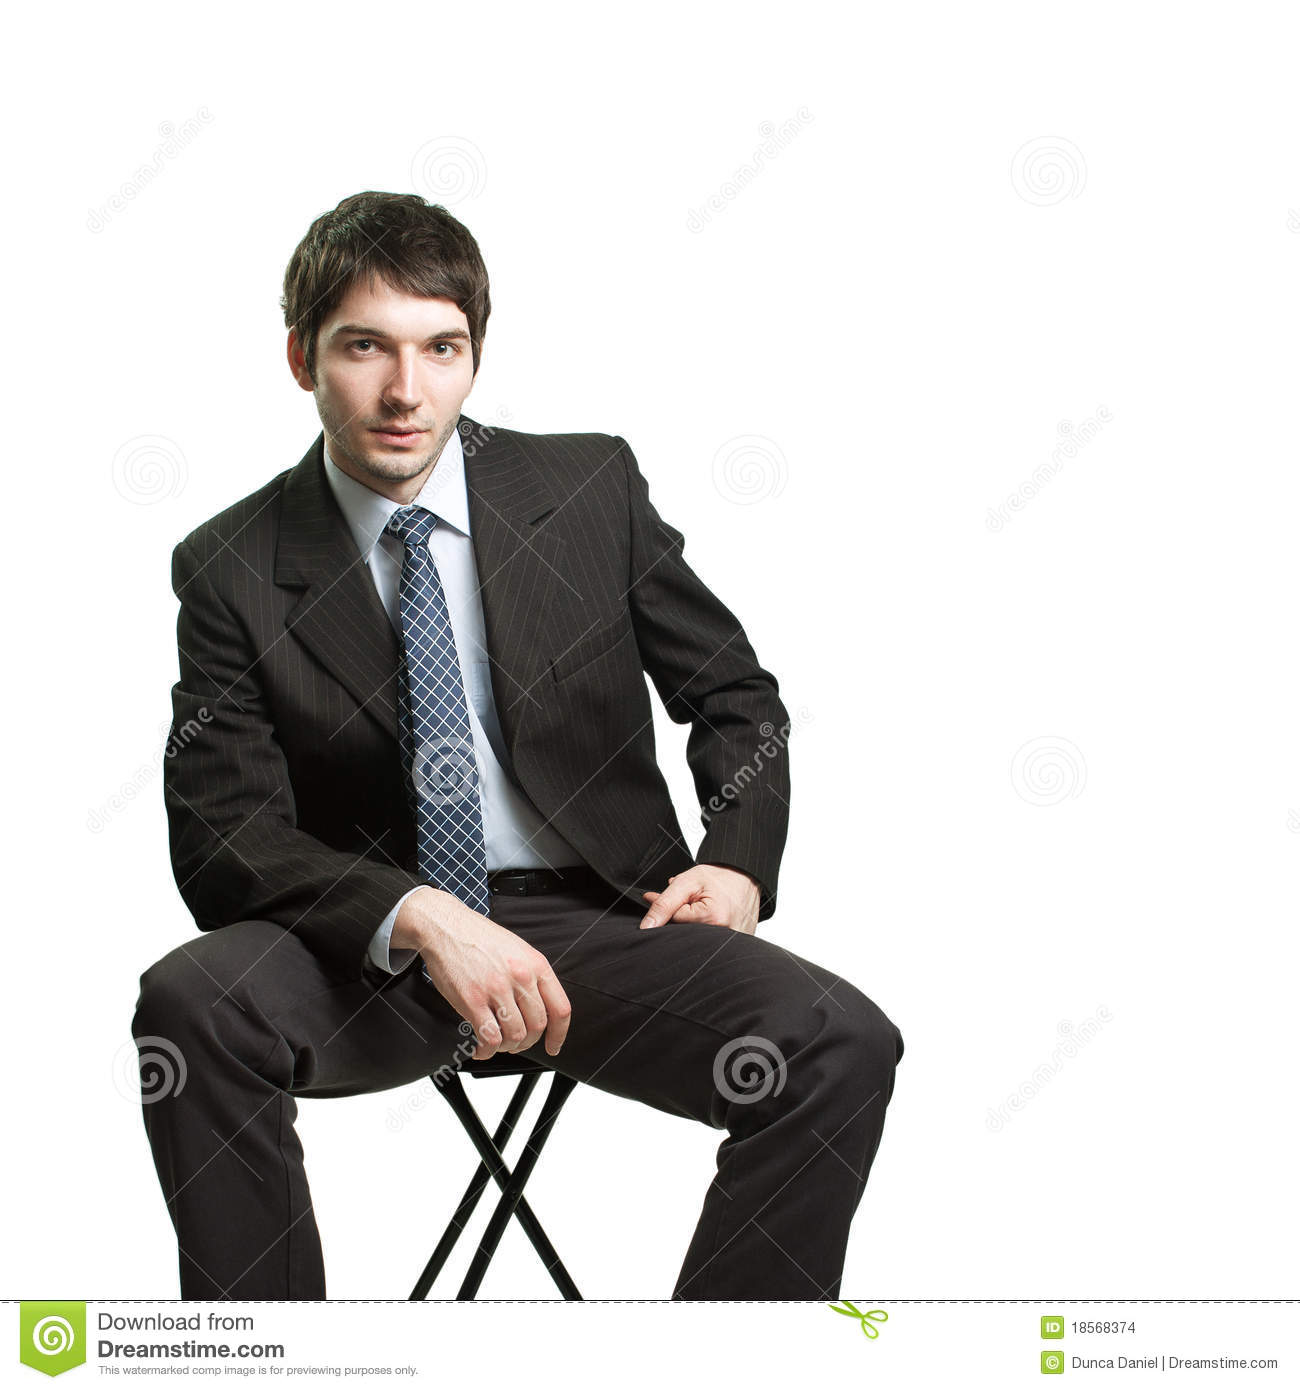 Confident Businessman Sitting On Chair Stock Photo - Image ... Грустный Мужчина